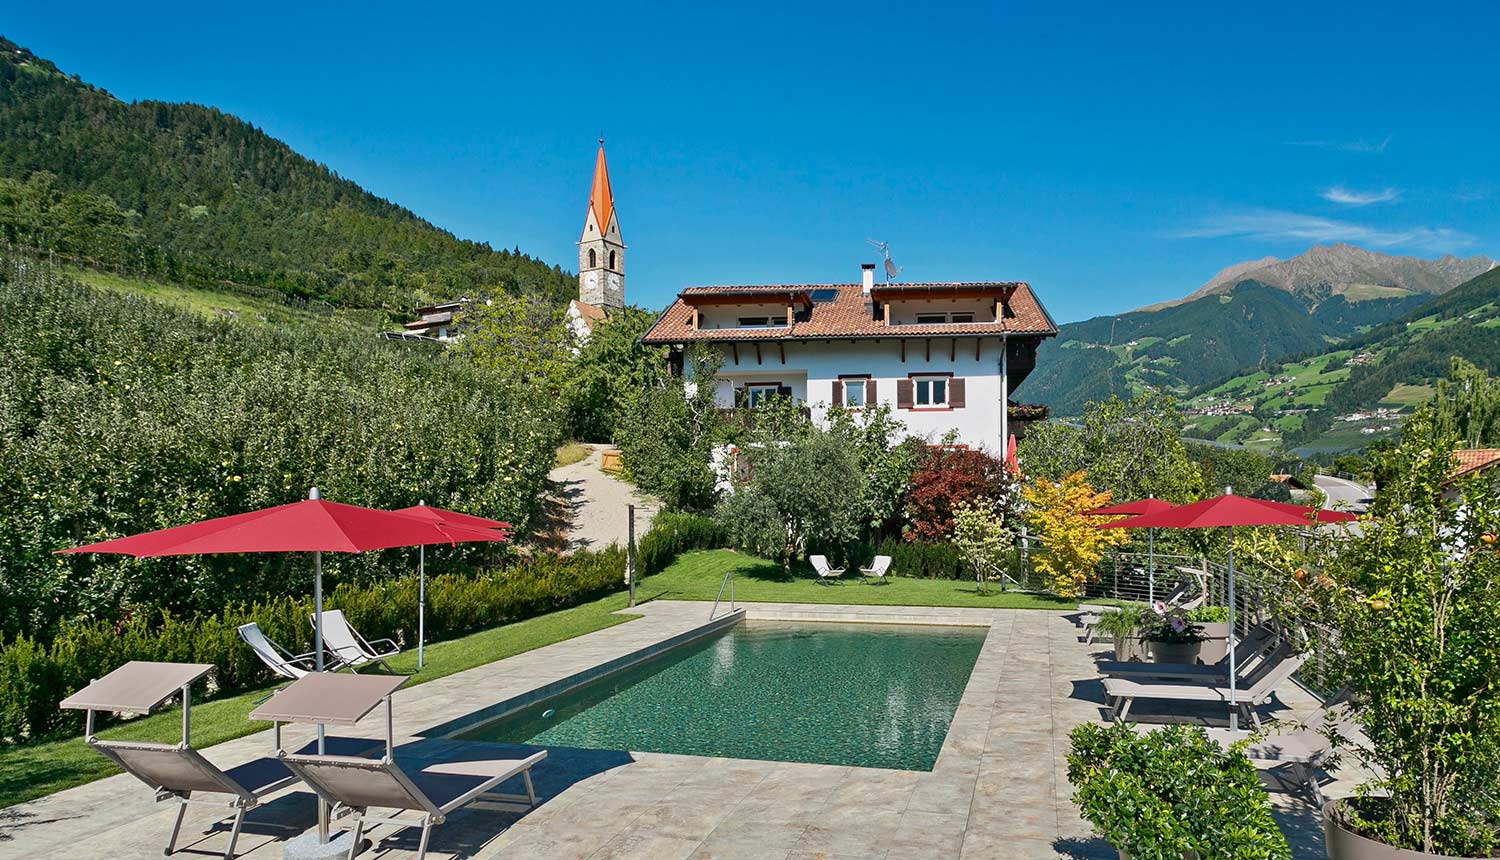 Family holidays at the Gasserhof farm with pool in Kuens/Caines